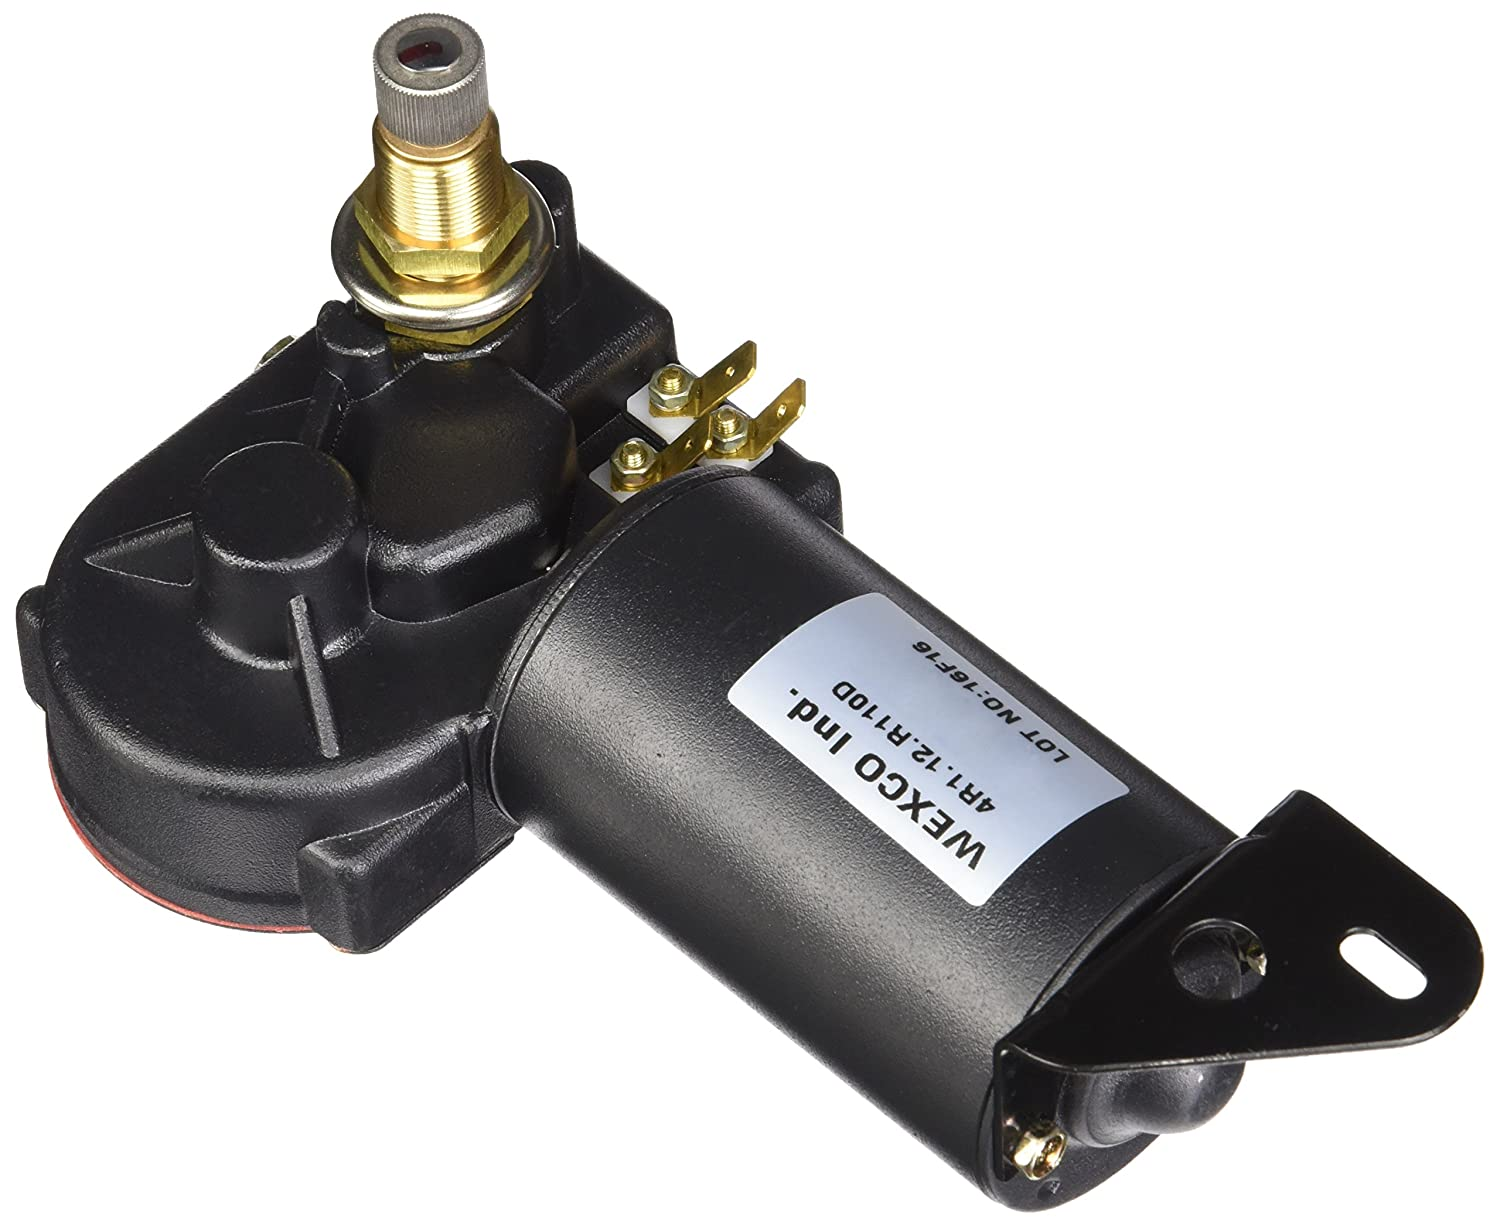 Wexco 4R1.12.R110D 1.5' Wiper Motor, 12V